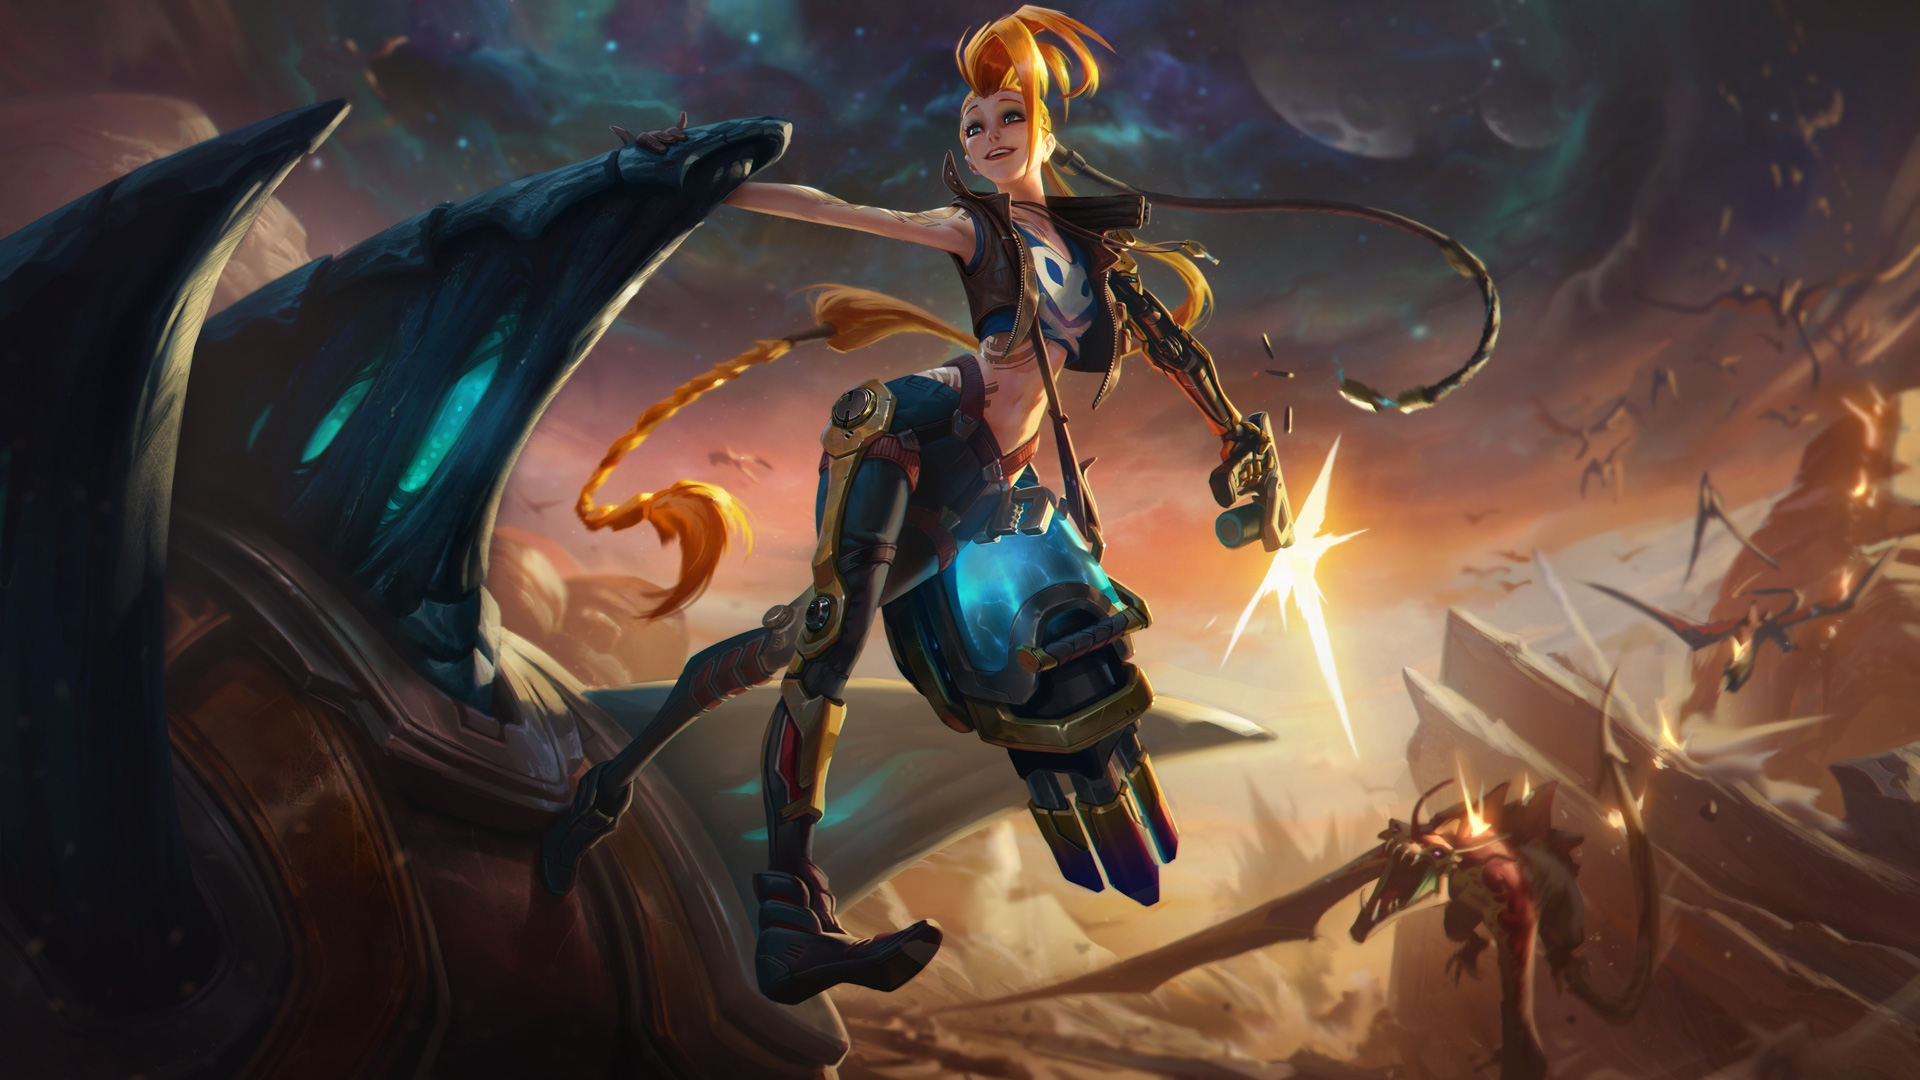 Jinx_Article_Image.jpg